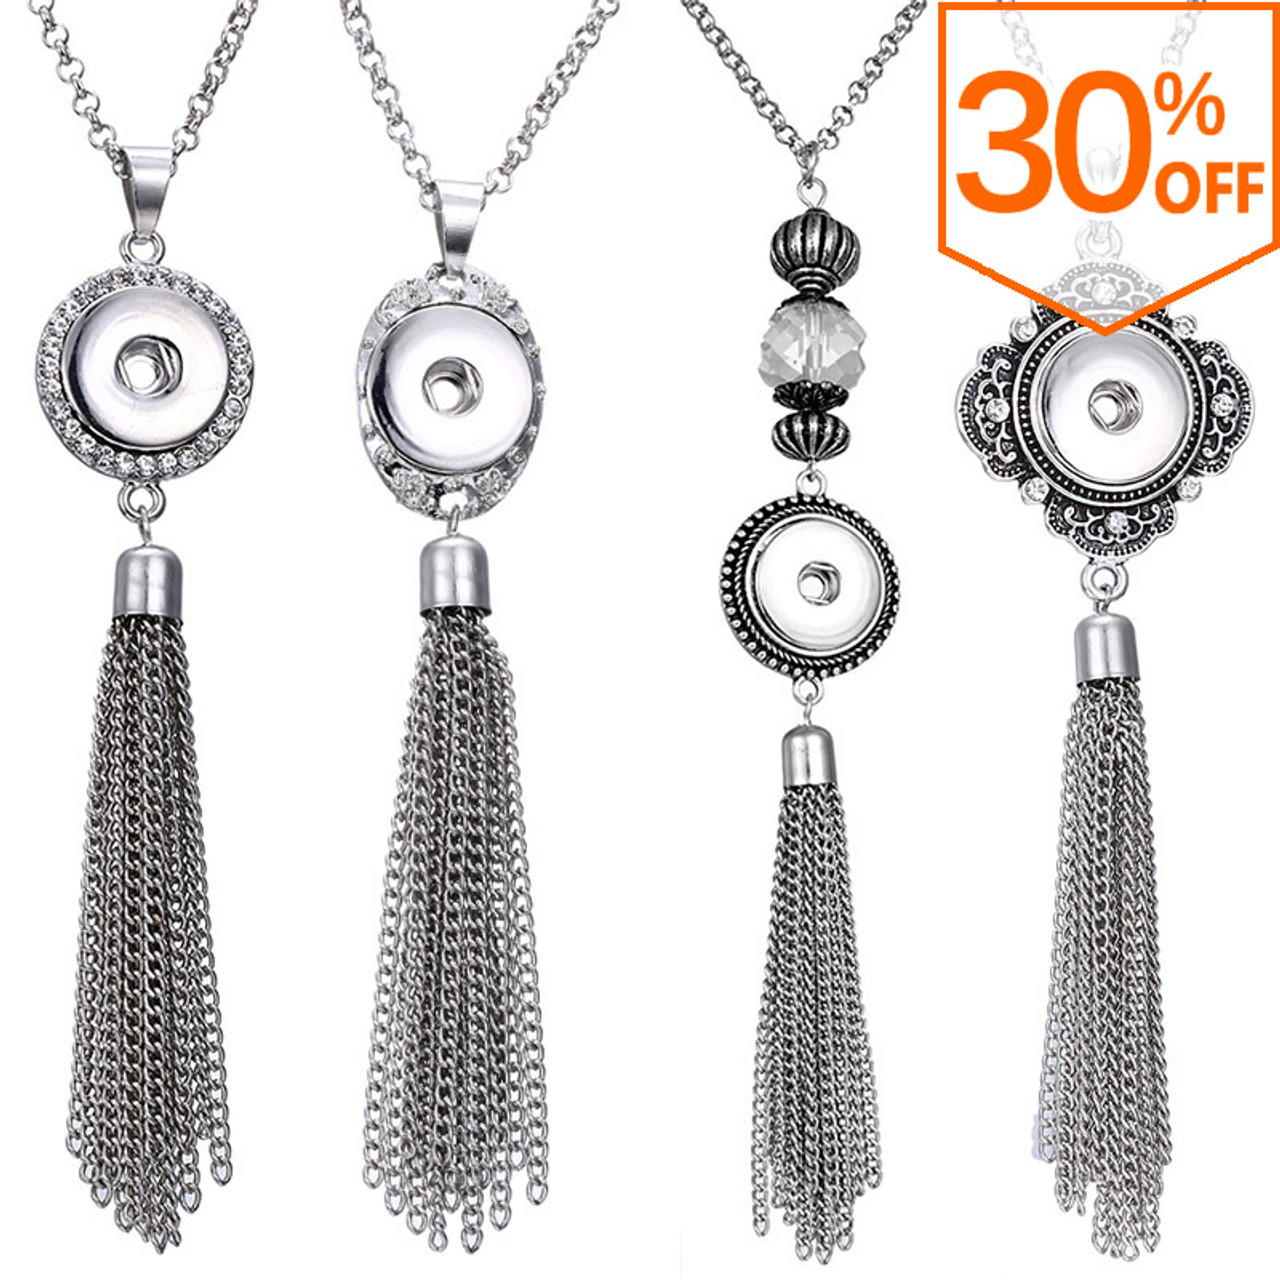 Crystal Vintage Metal Tassel Necklace for Snap Button Jewelry Charms